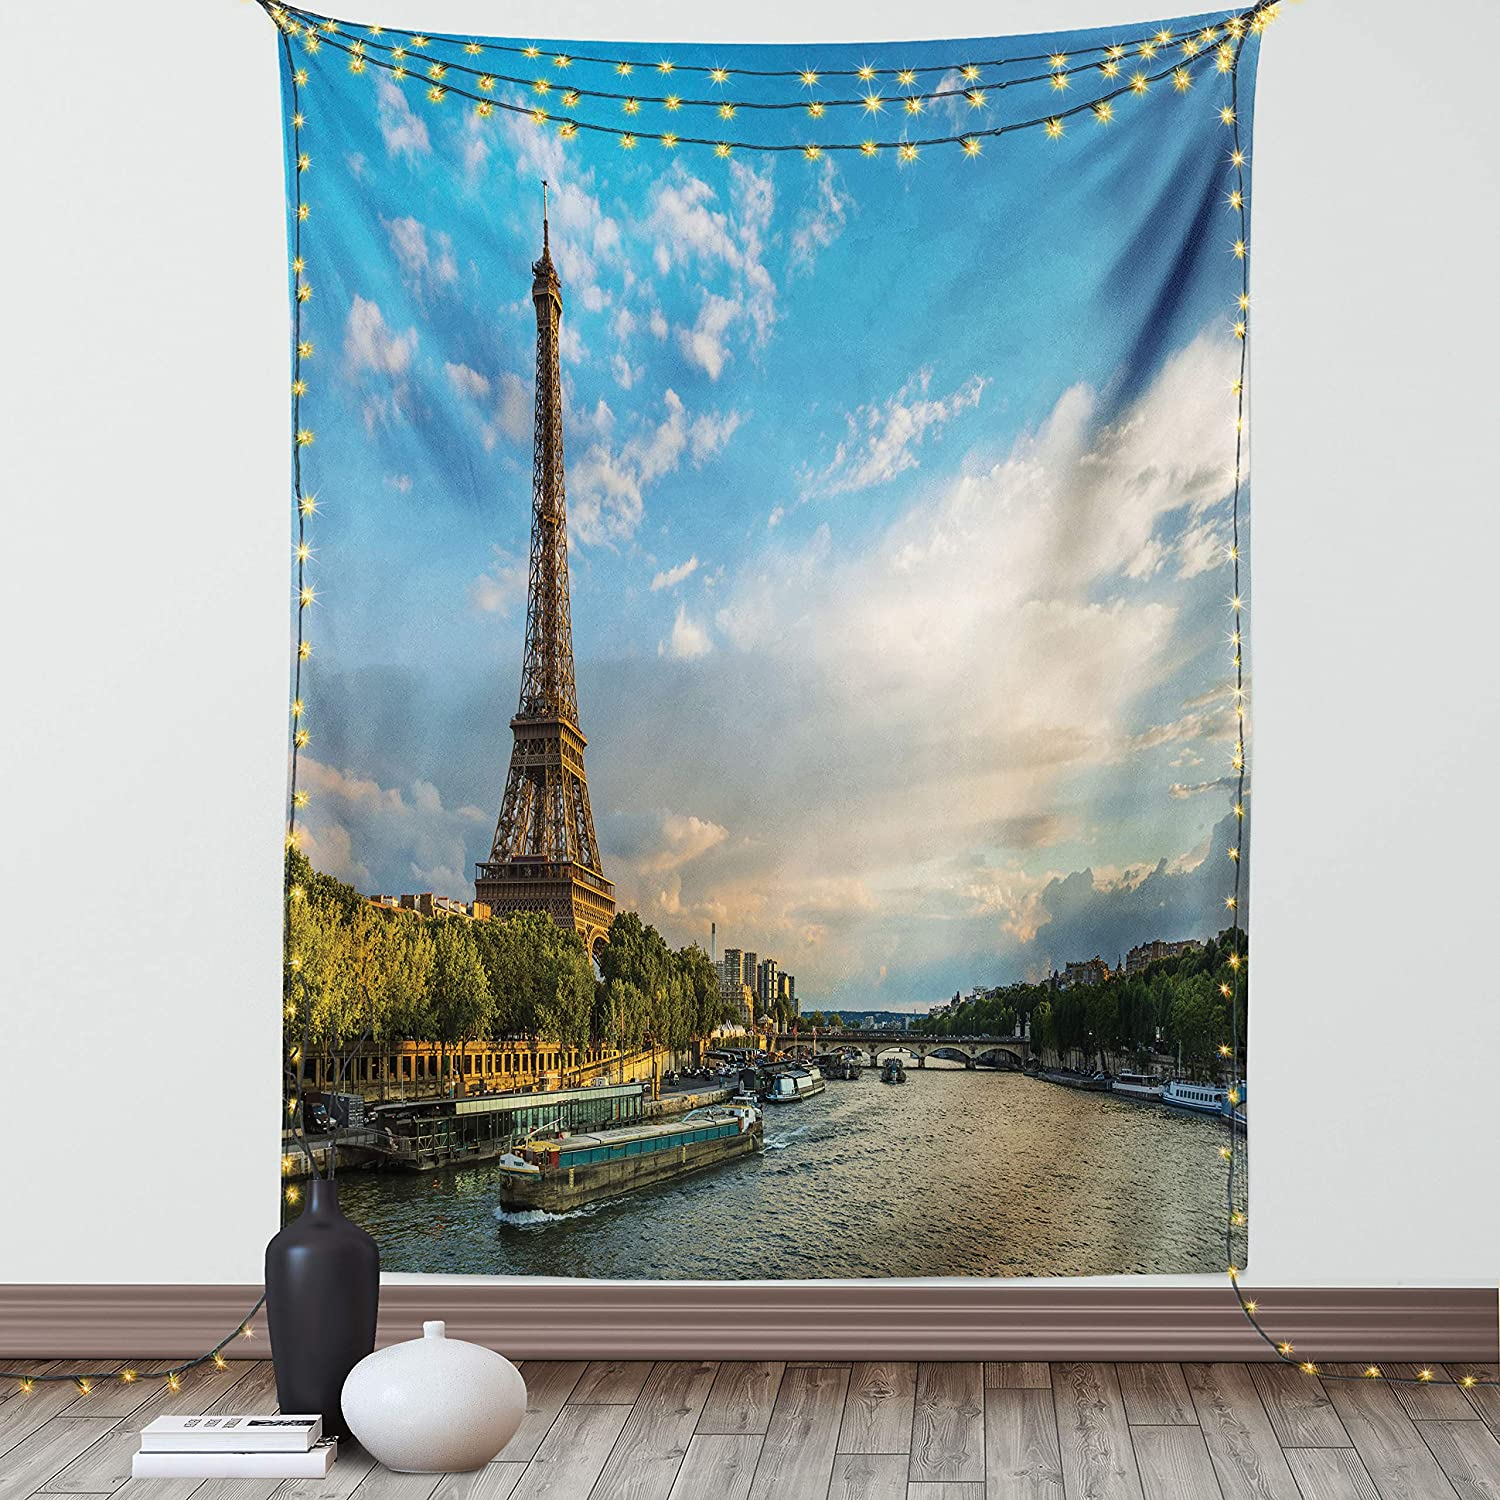 Ambesonne Eiffel Tower Tapestry Twin Size,Sunset Over a Prominent Tower Seine River Paris France Boats Passing by The Bridge, Wall Hanging Bedspread Bed Cover Wall Decor, 68